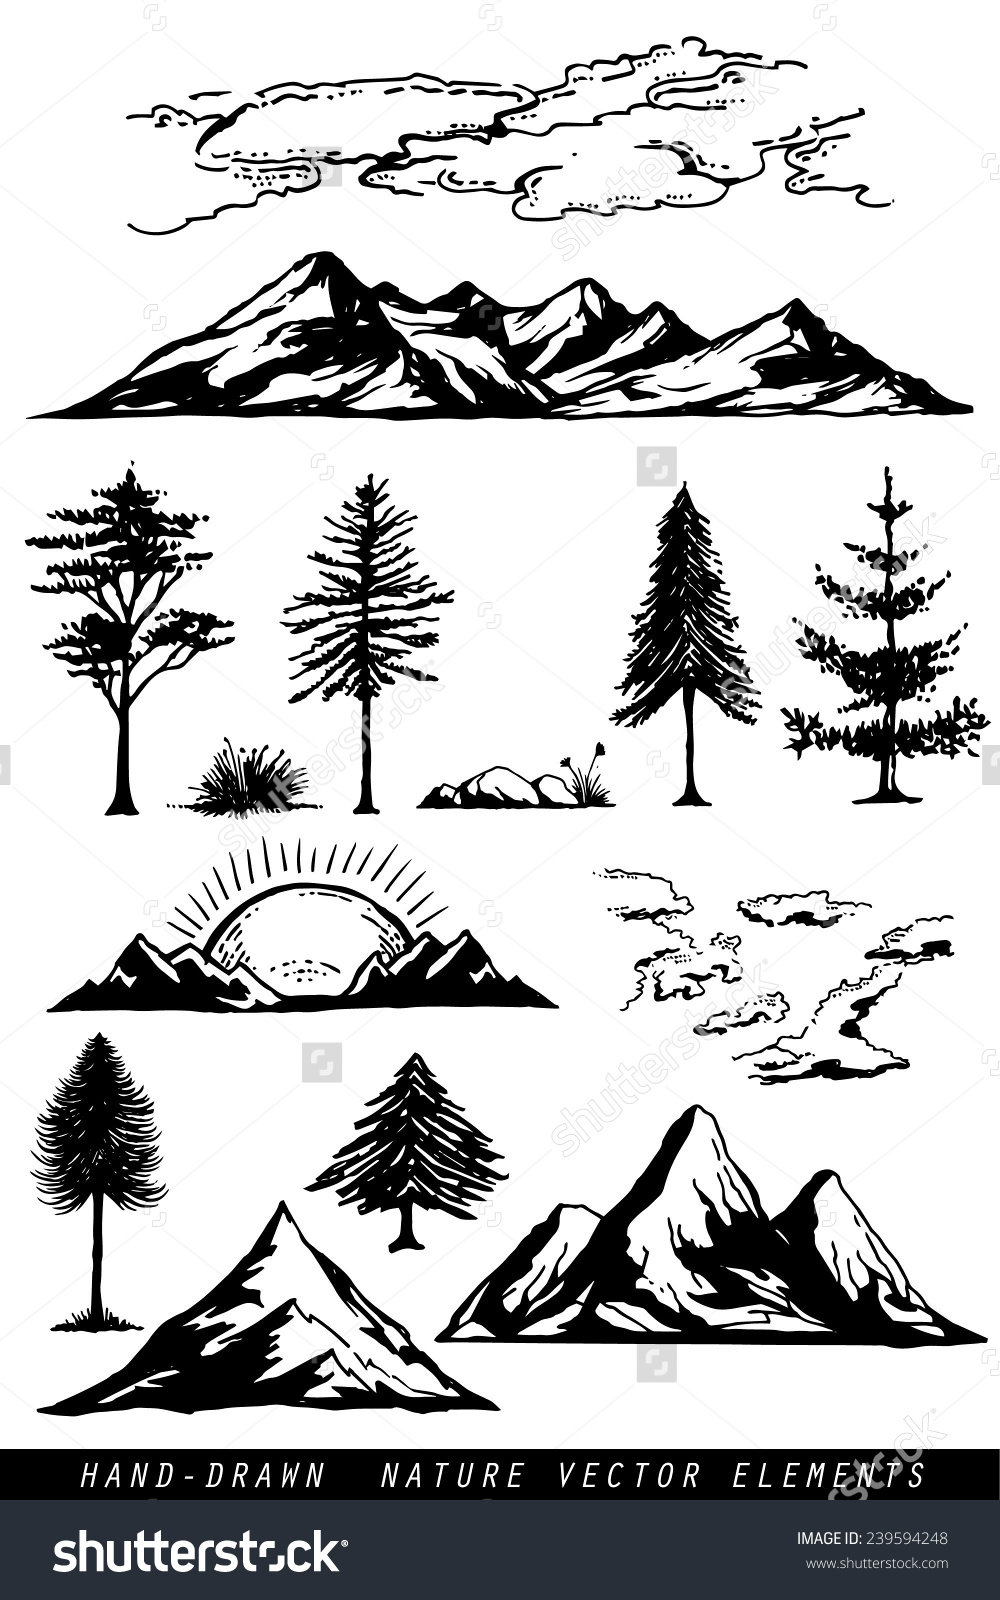 Hand Drawing Mountains Pines Clouds Plants Stock Vector 239594248.